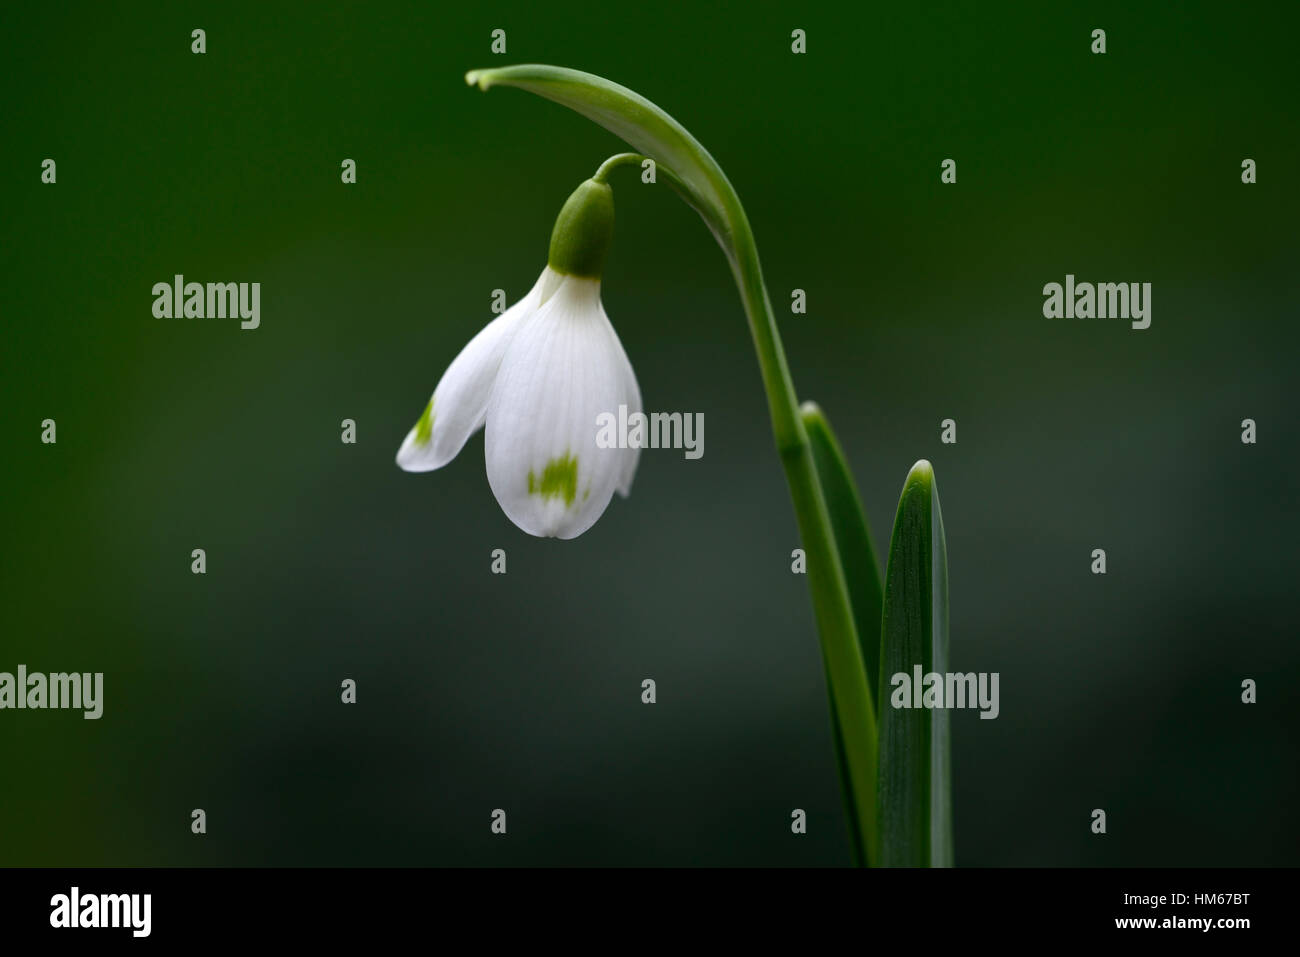 Galanthus David Baker green markings snowdrop white flowers flower bulbs snowdrops spring flowering collectors rare - Stock Image